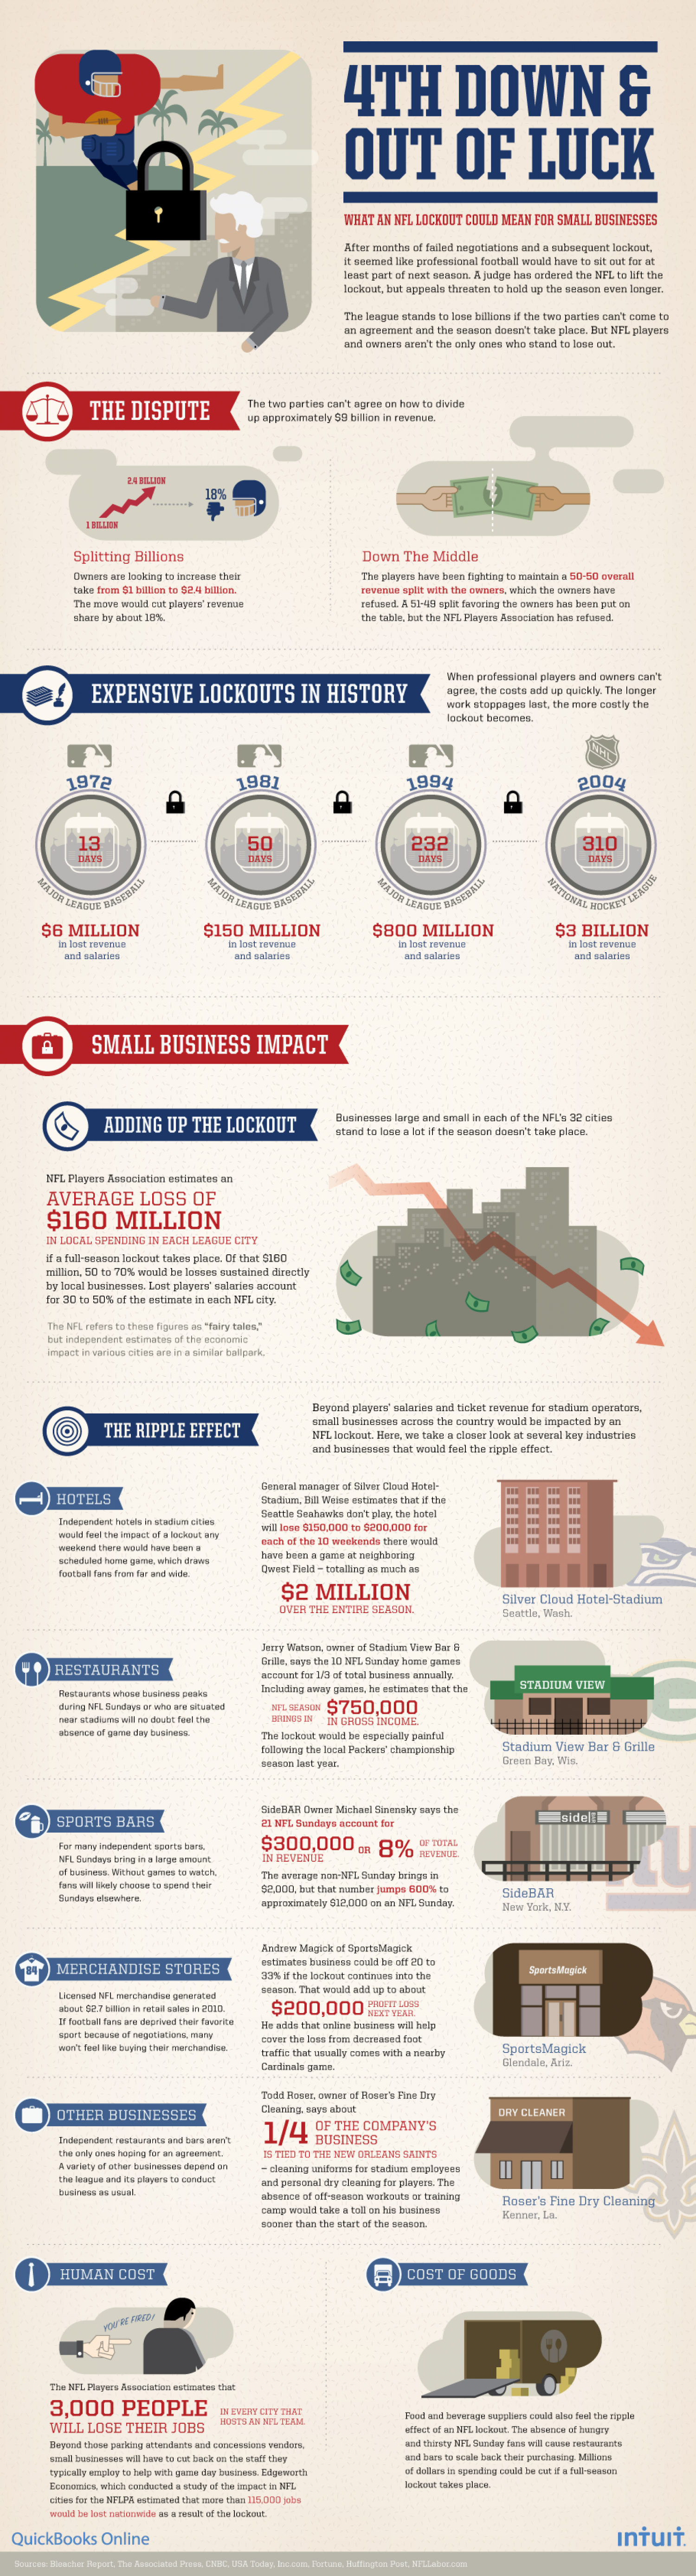 Fourth Down and Out of Luck: The NFL Lockout and You Infographic